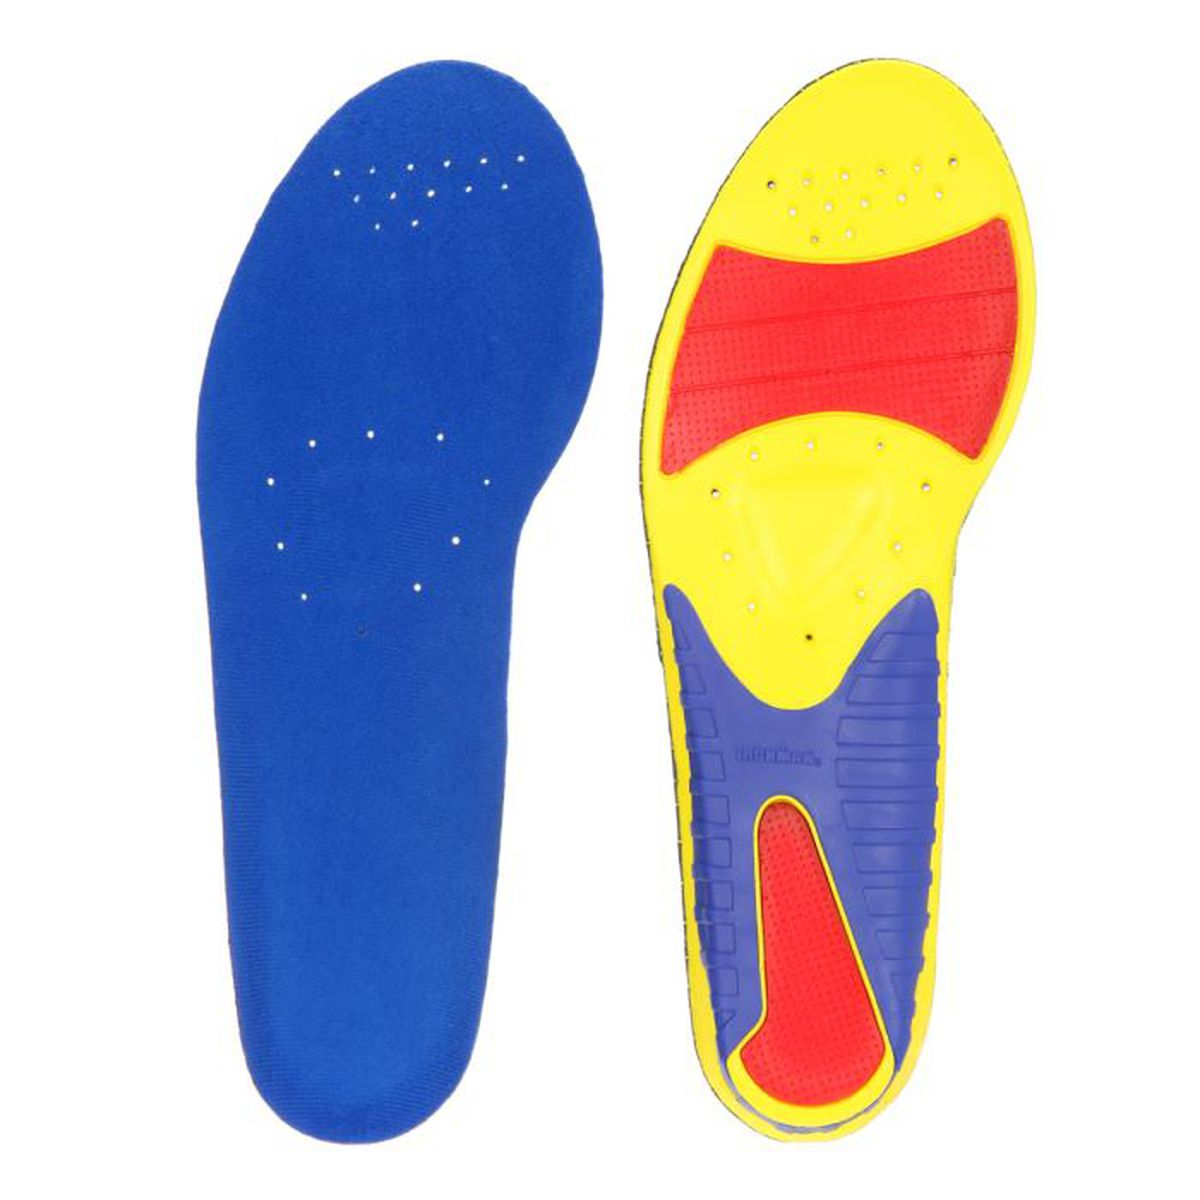 Pas Ironman Cher All Semelle Replacement Prix Sport Insoles rFr0qYw